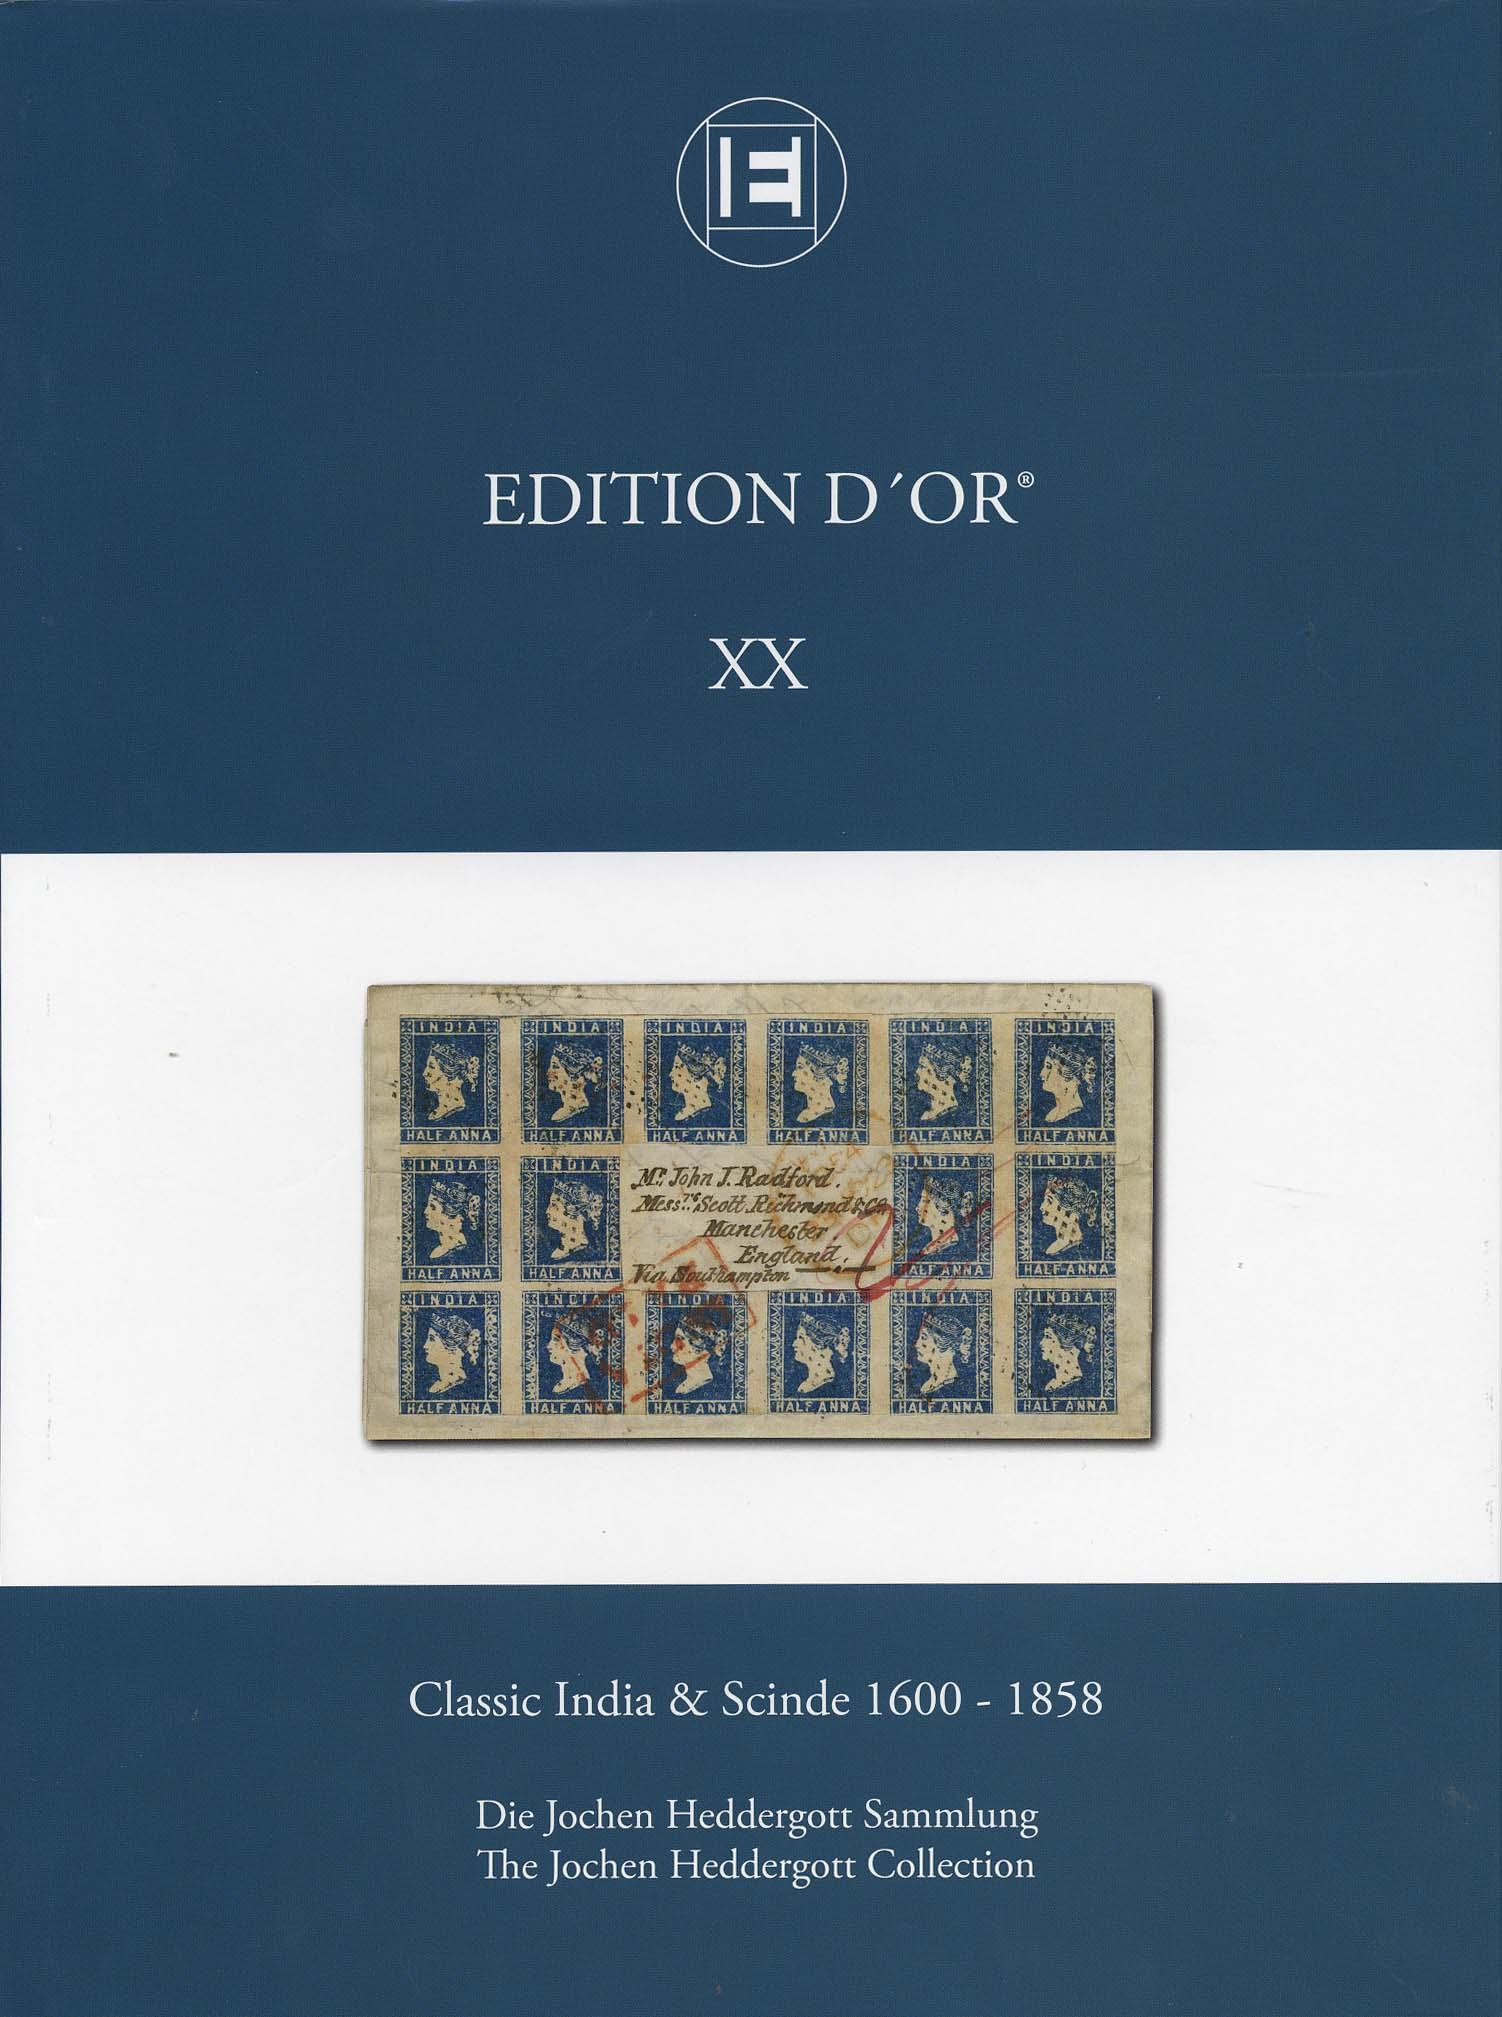 Vol. 20: Classic India & Scinde 1600-1858 • The Jochen Heddergott Collection